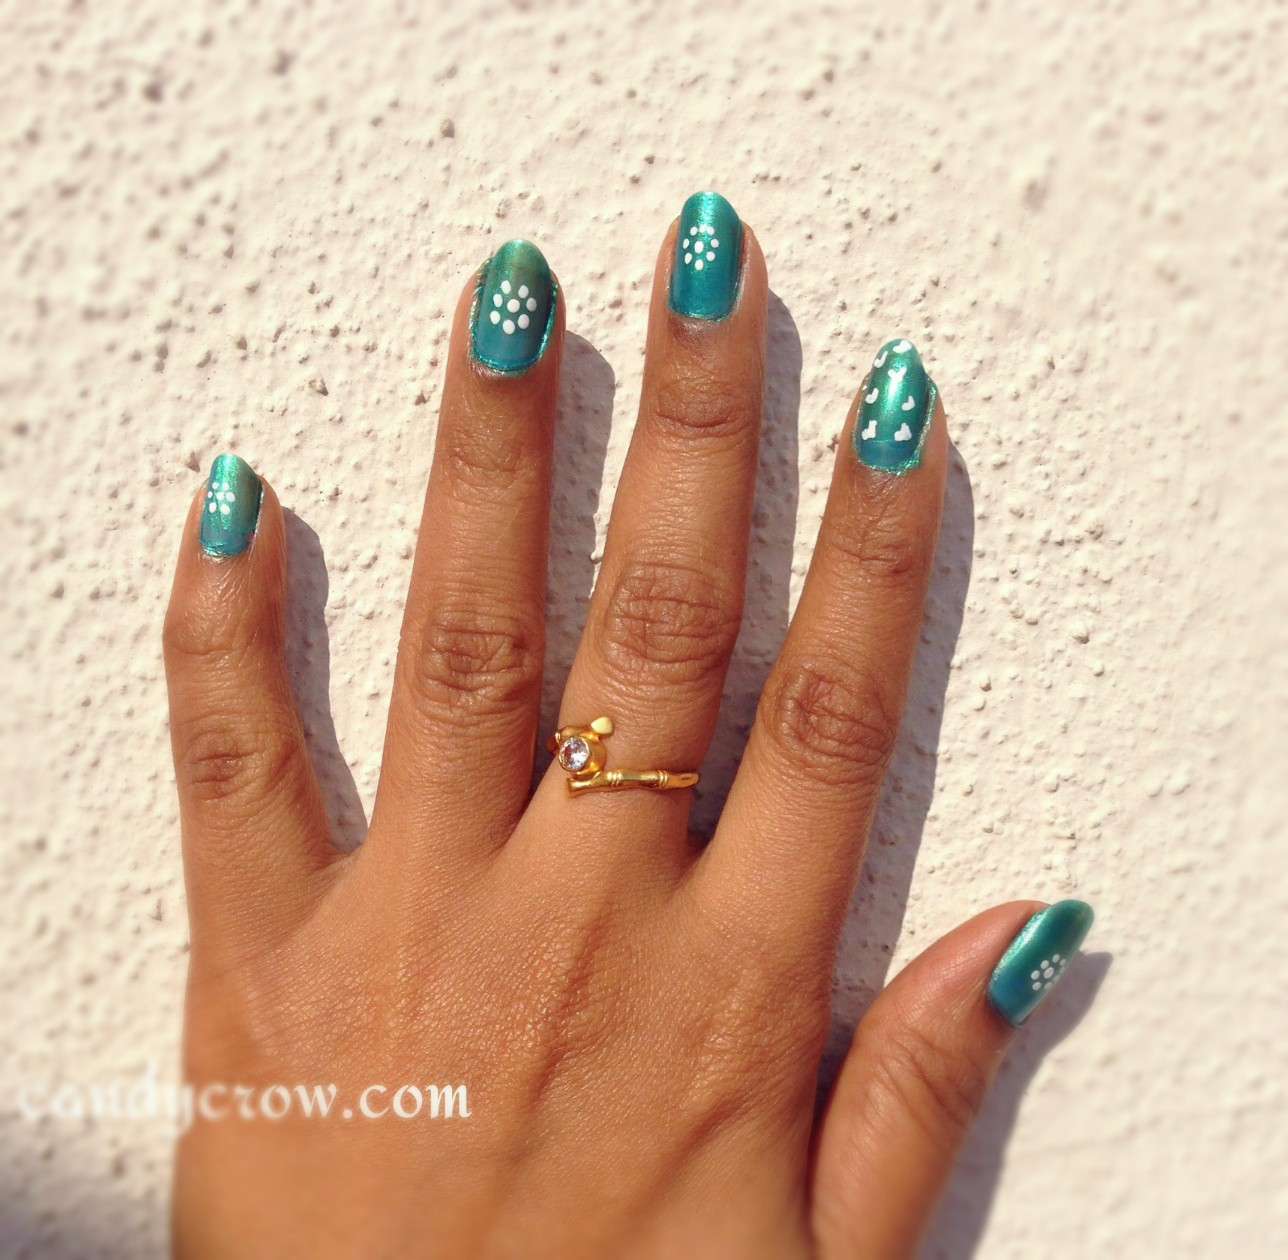 Toothpick Nail Art Designs: Easy Nail Art With Toothpick